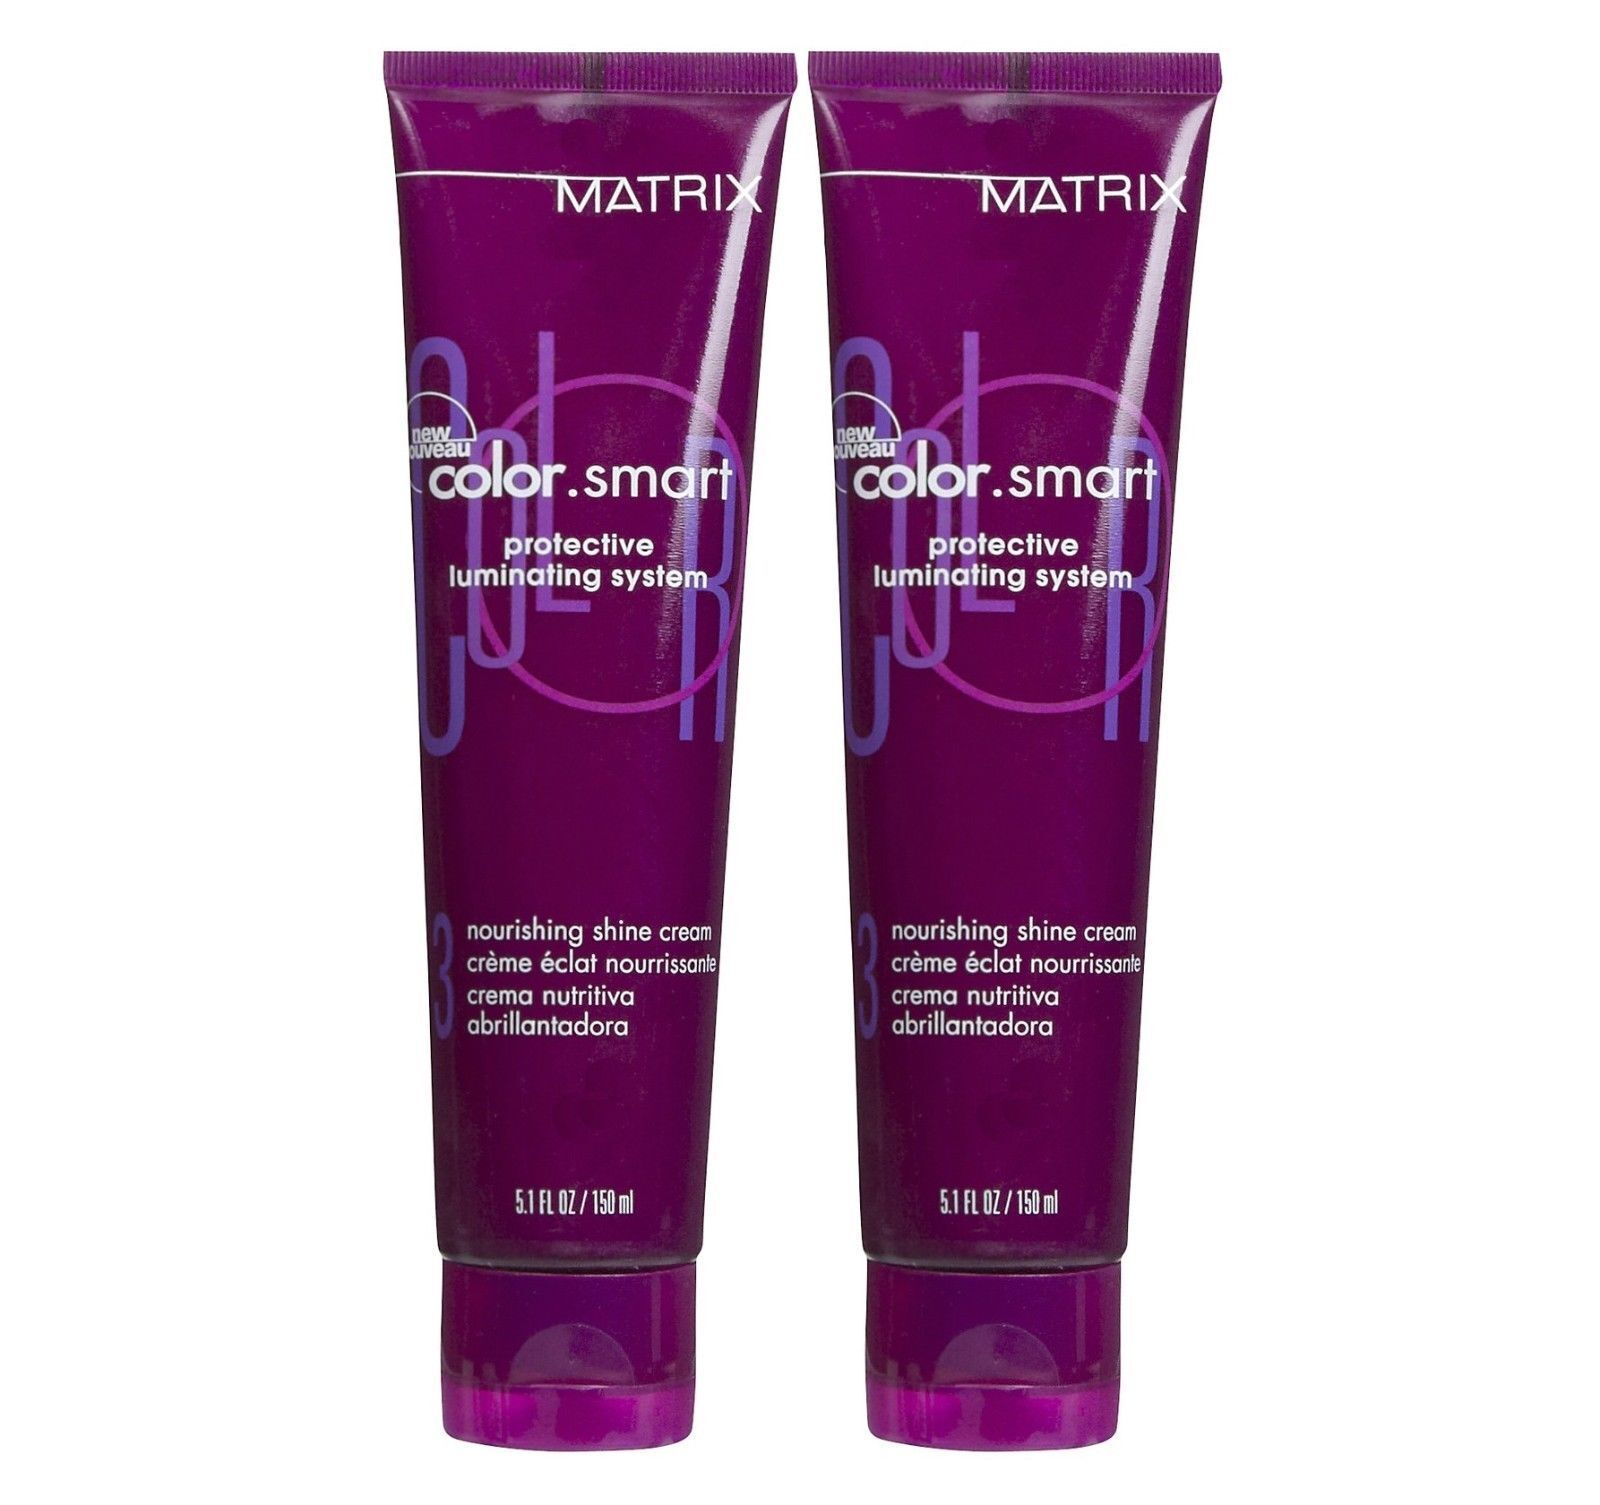 Matrix Color Smart Nourishing Shine Cream, 5.1 -Ounce by Mat